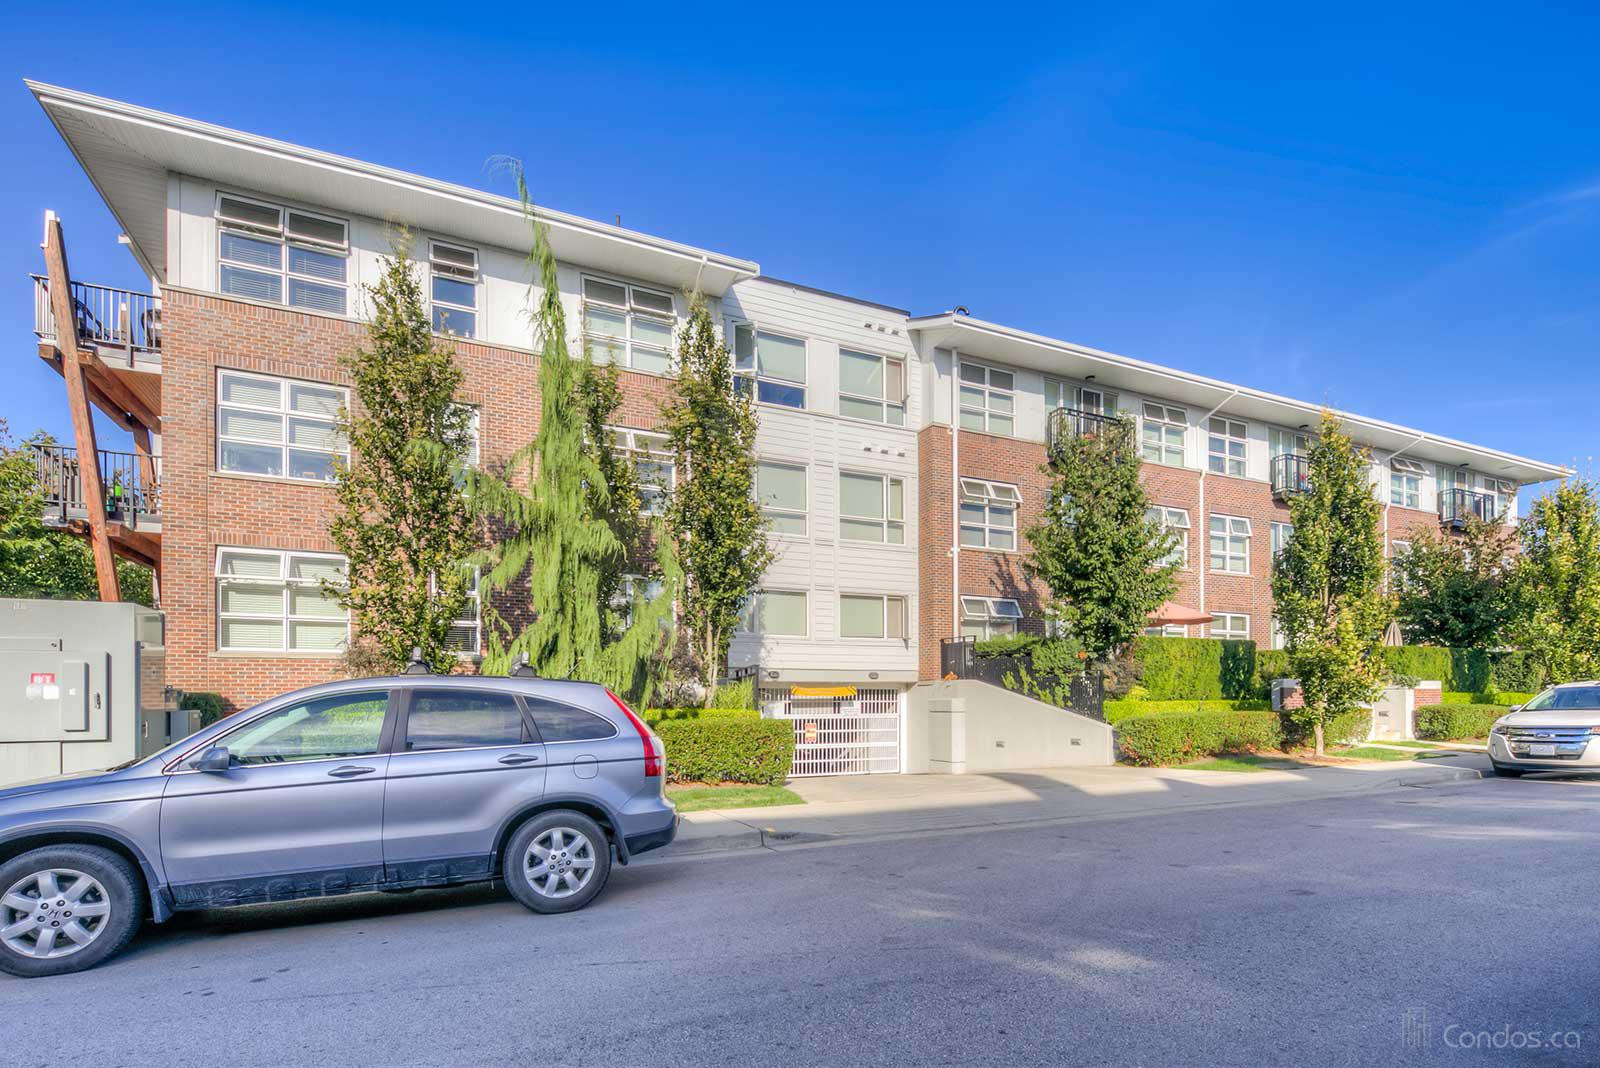 Duo at 245 Brookes St, New Westminster 0